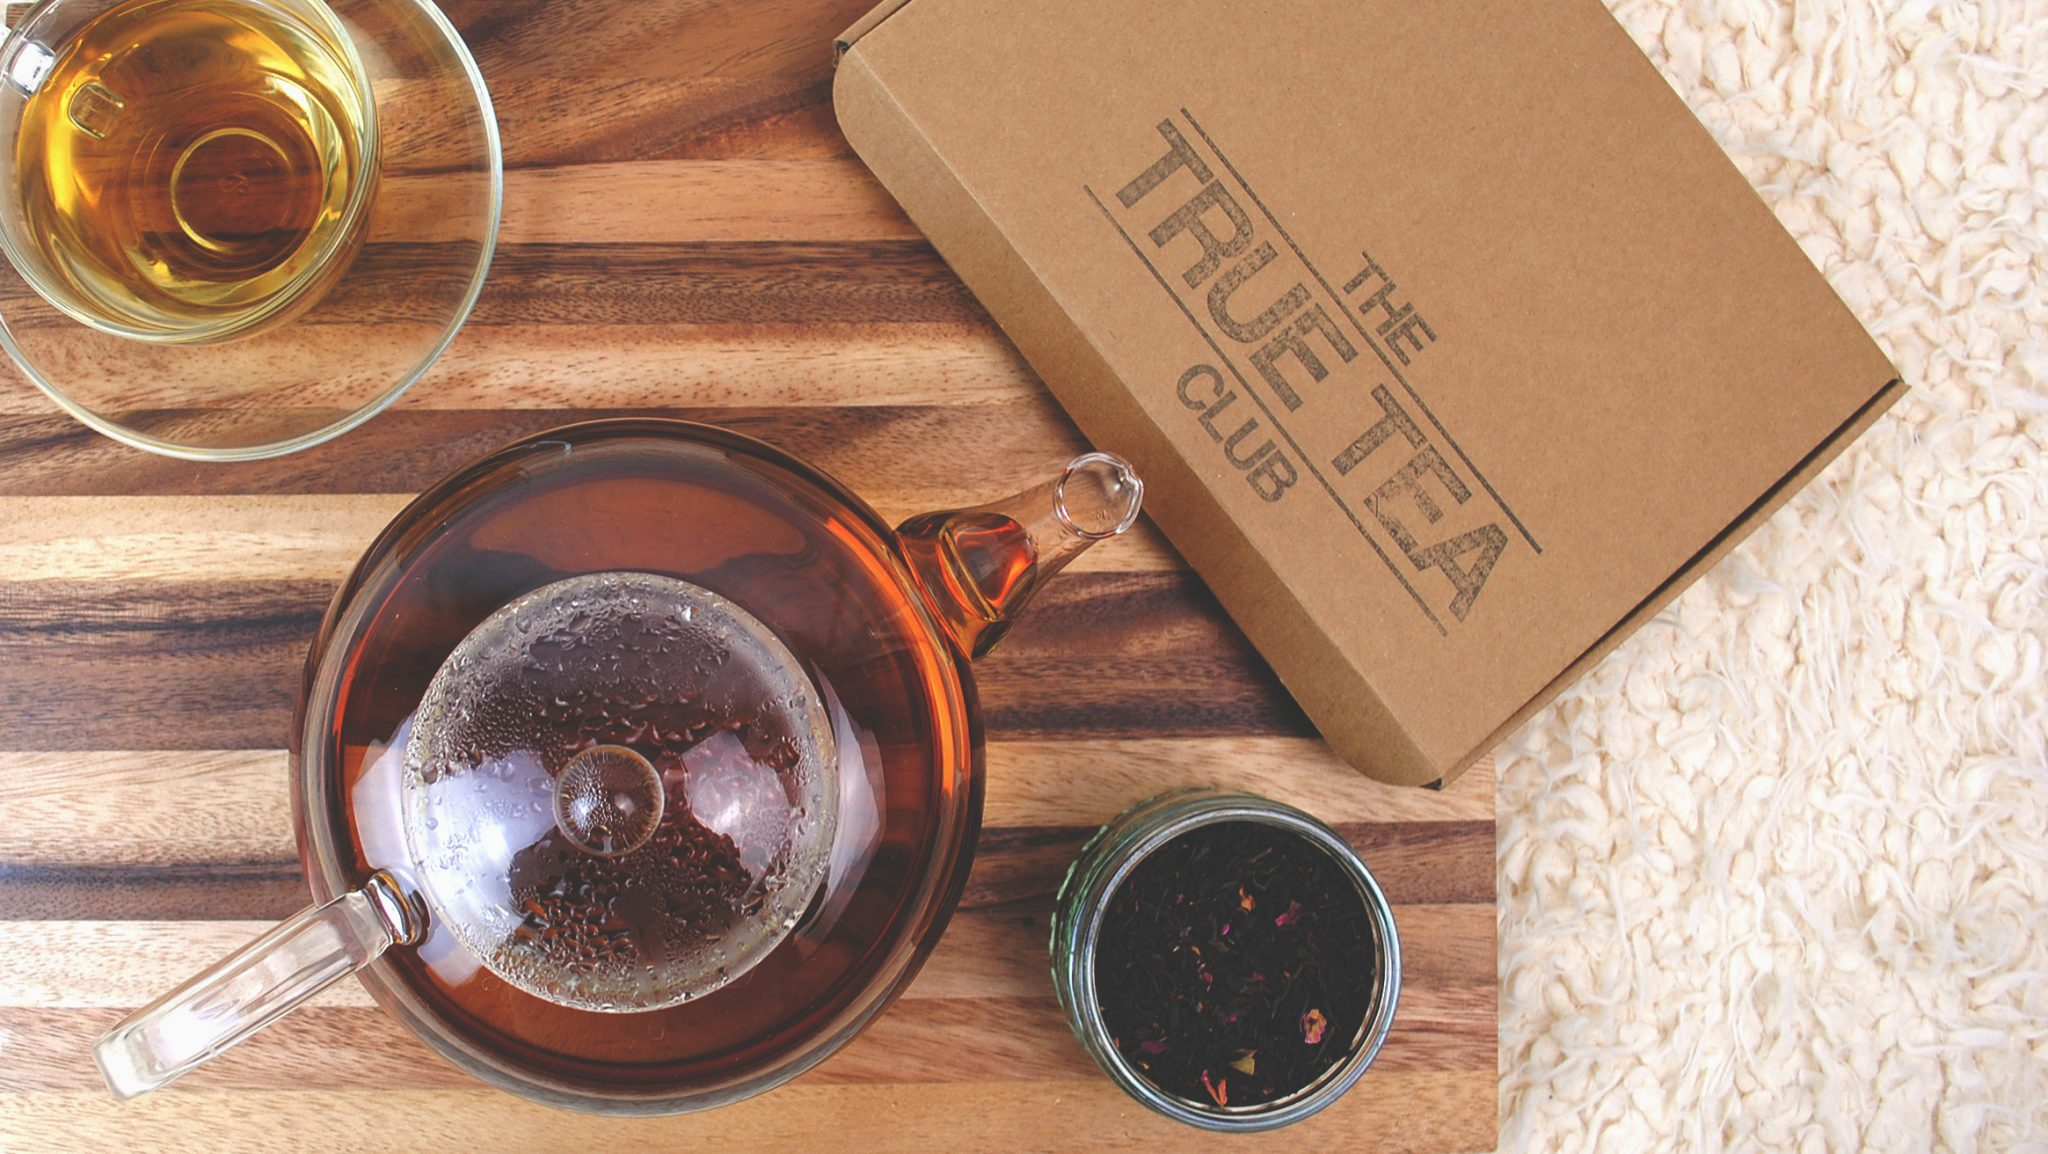 a teapot with cinnamon and rose black tea inside which has been placed next to true tea club's subscription box